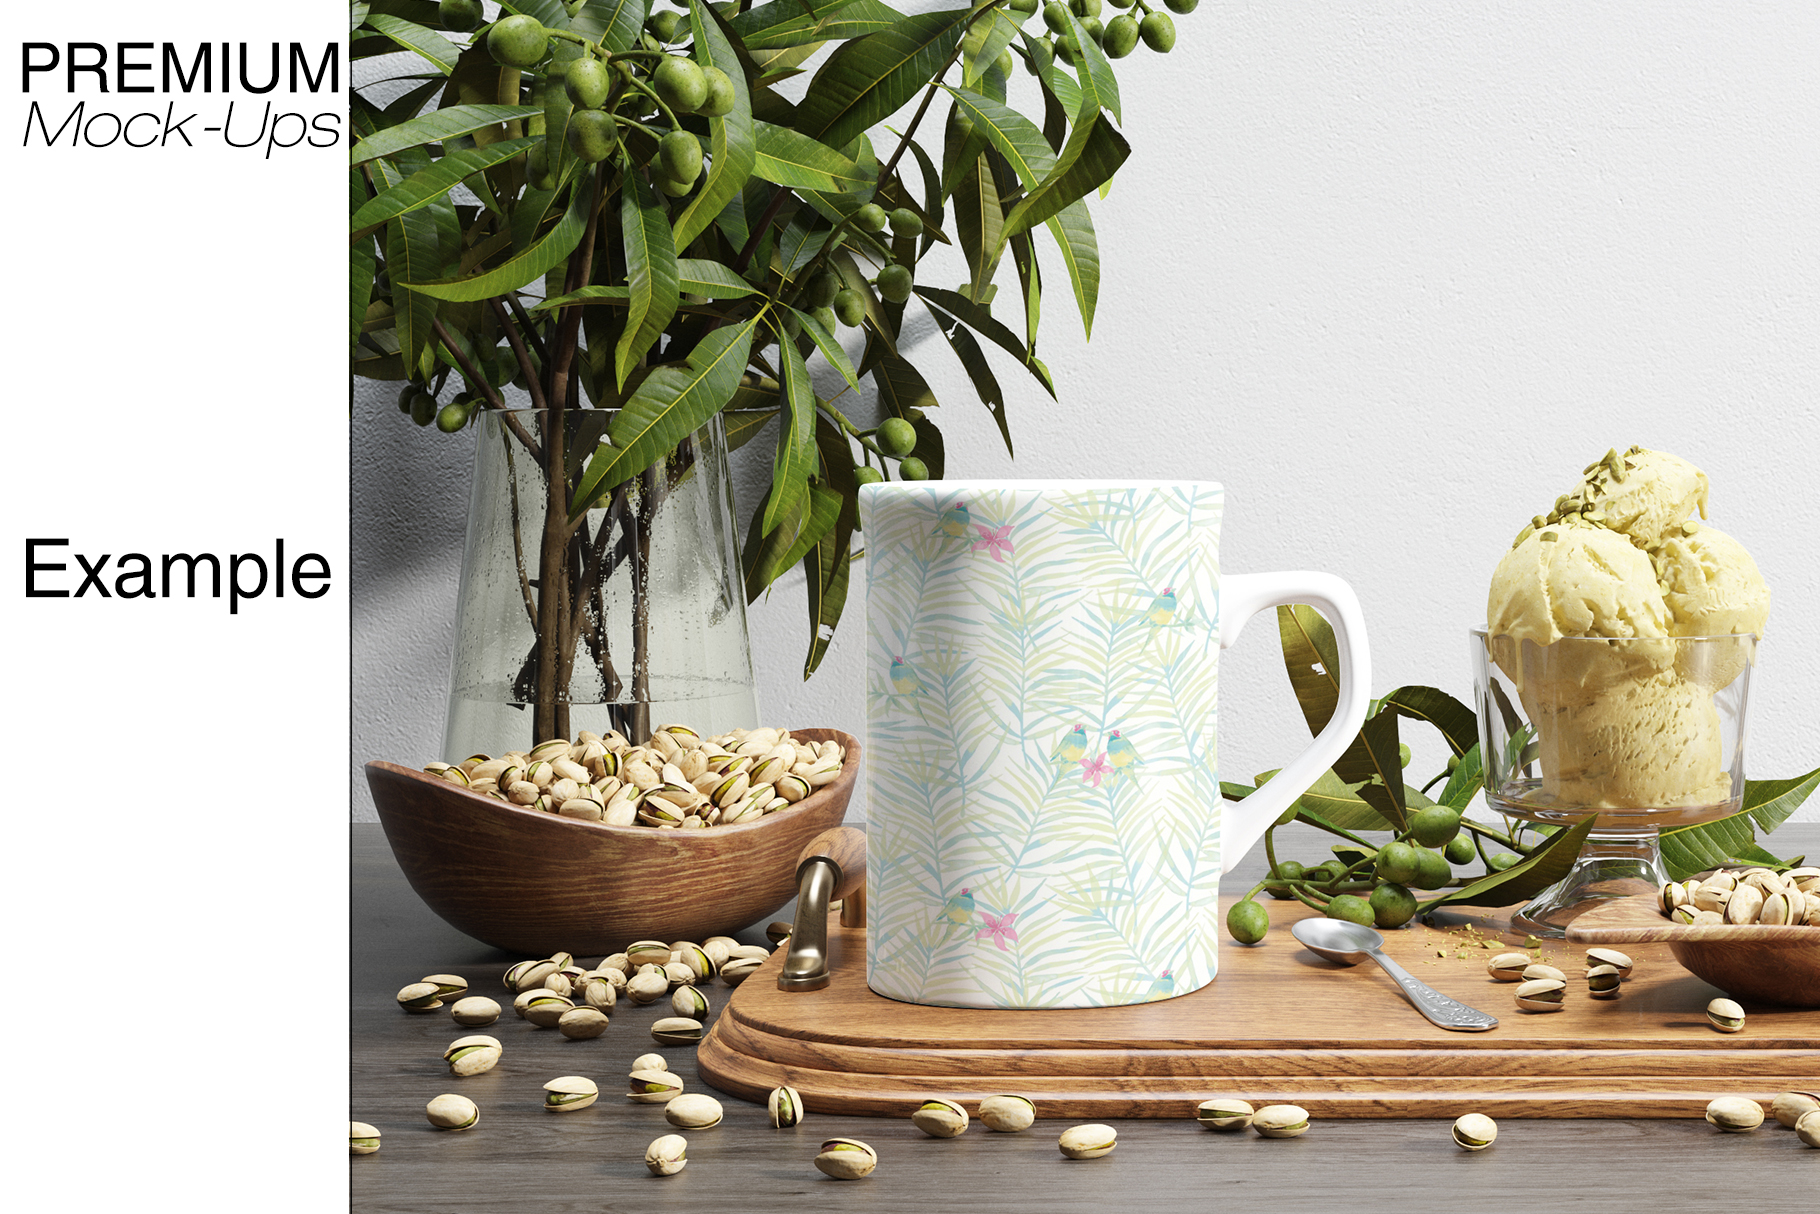 Mug Mockups - Many Shapes example image 2